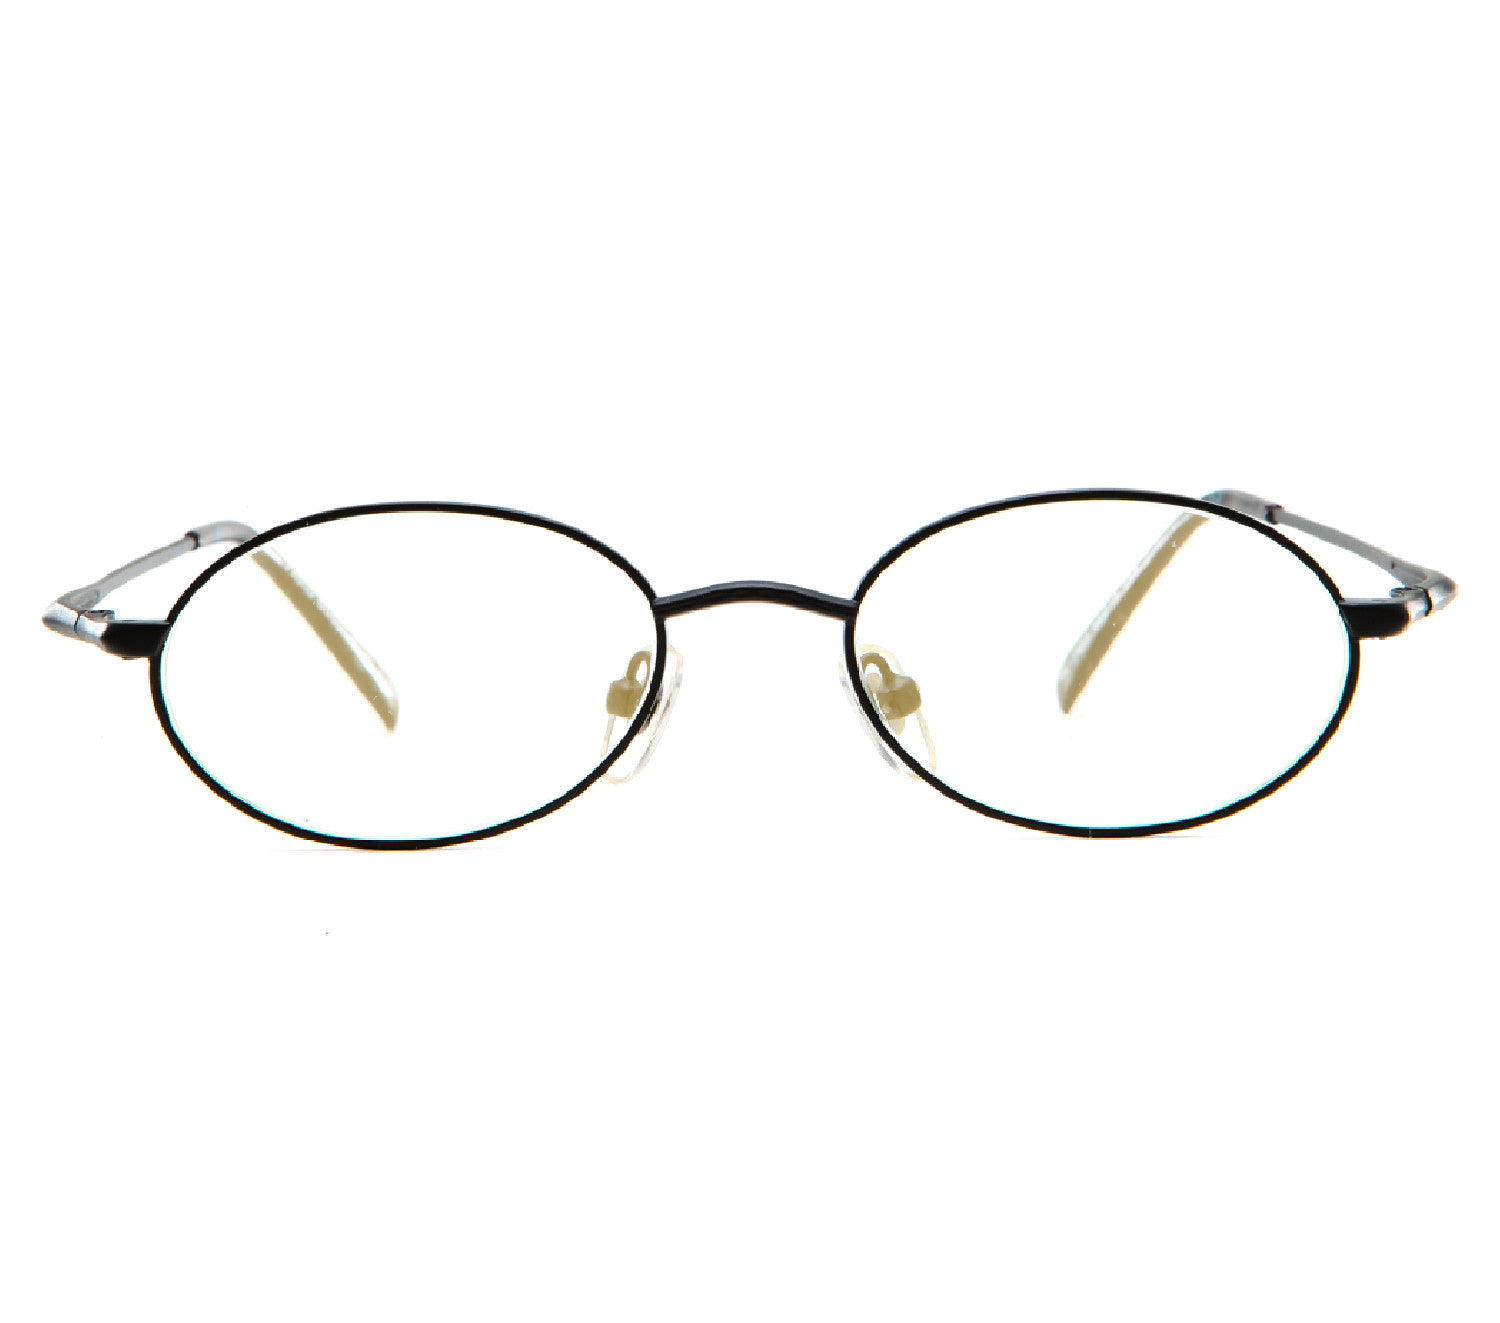 572e2e69e77 Paolo Gucci 7455 21K Gold Plated Special Edition Flash Gold – Vintage Frames  Company